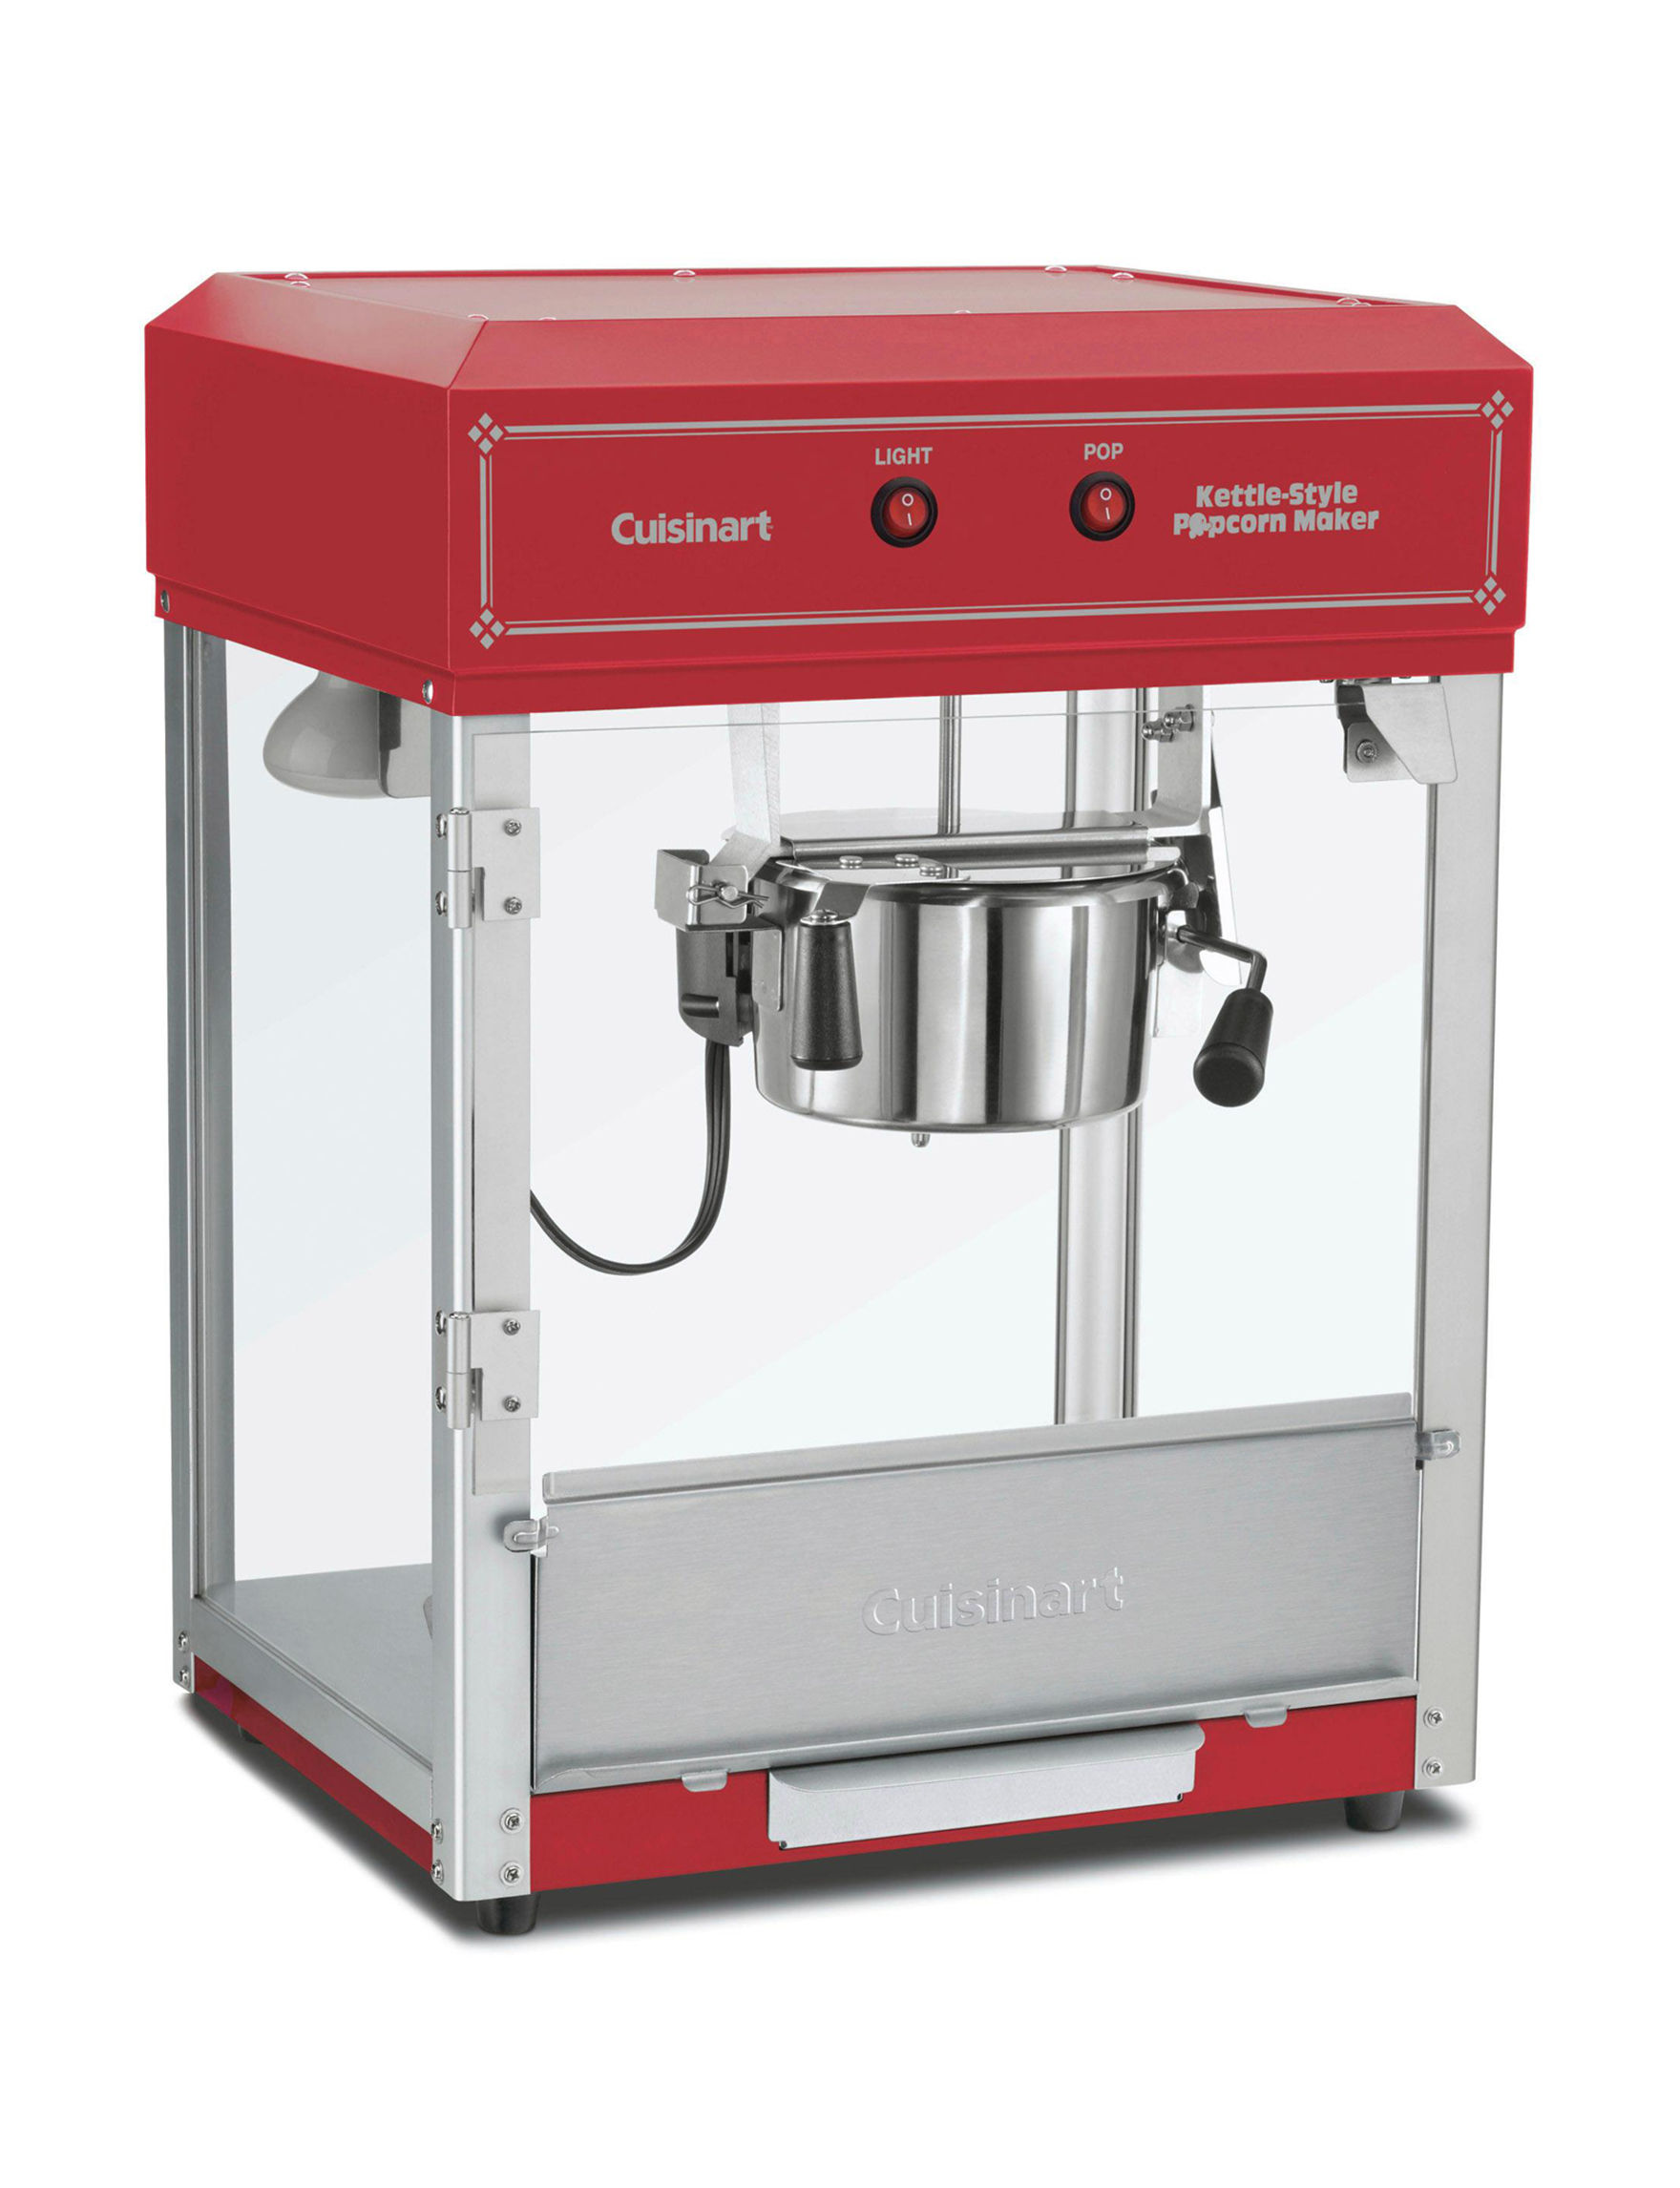 Cuisinart Red Specialty Food Makers Gourmet Food & Beverages Kitchen Appliances